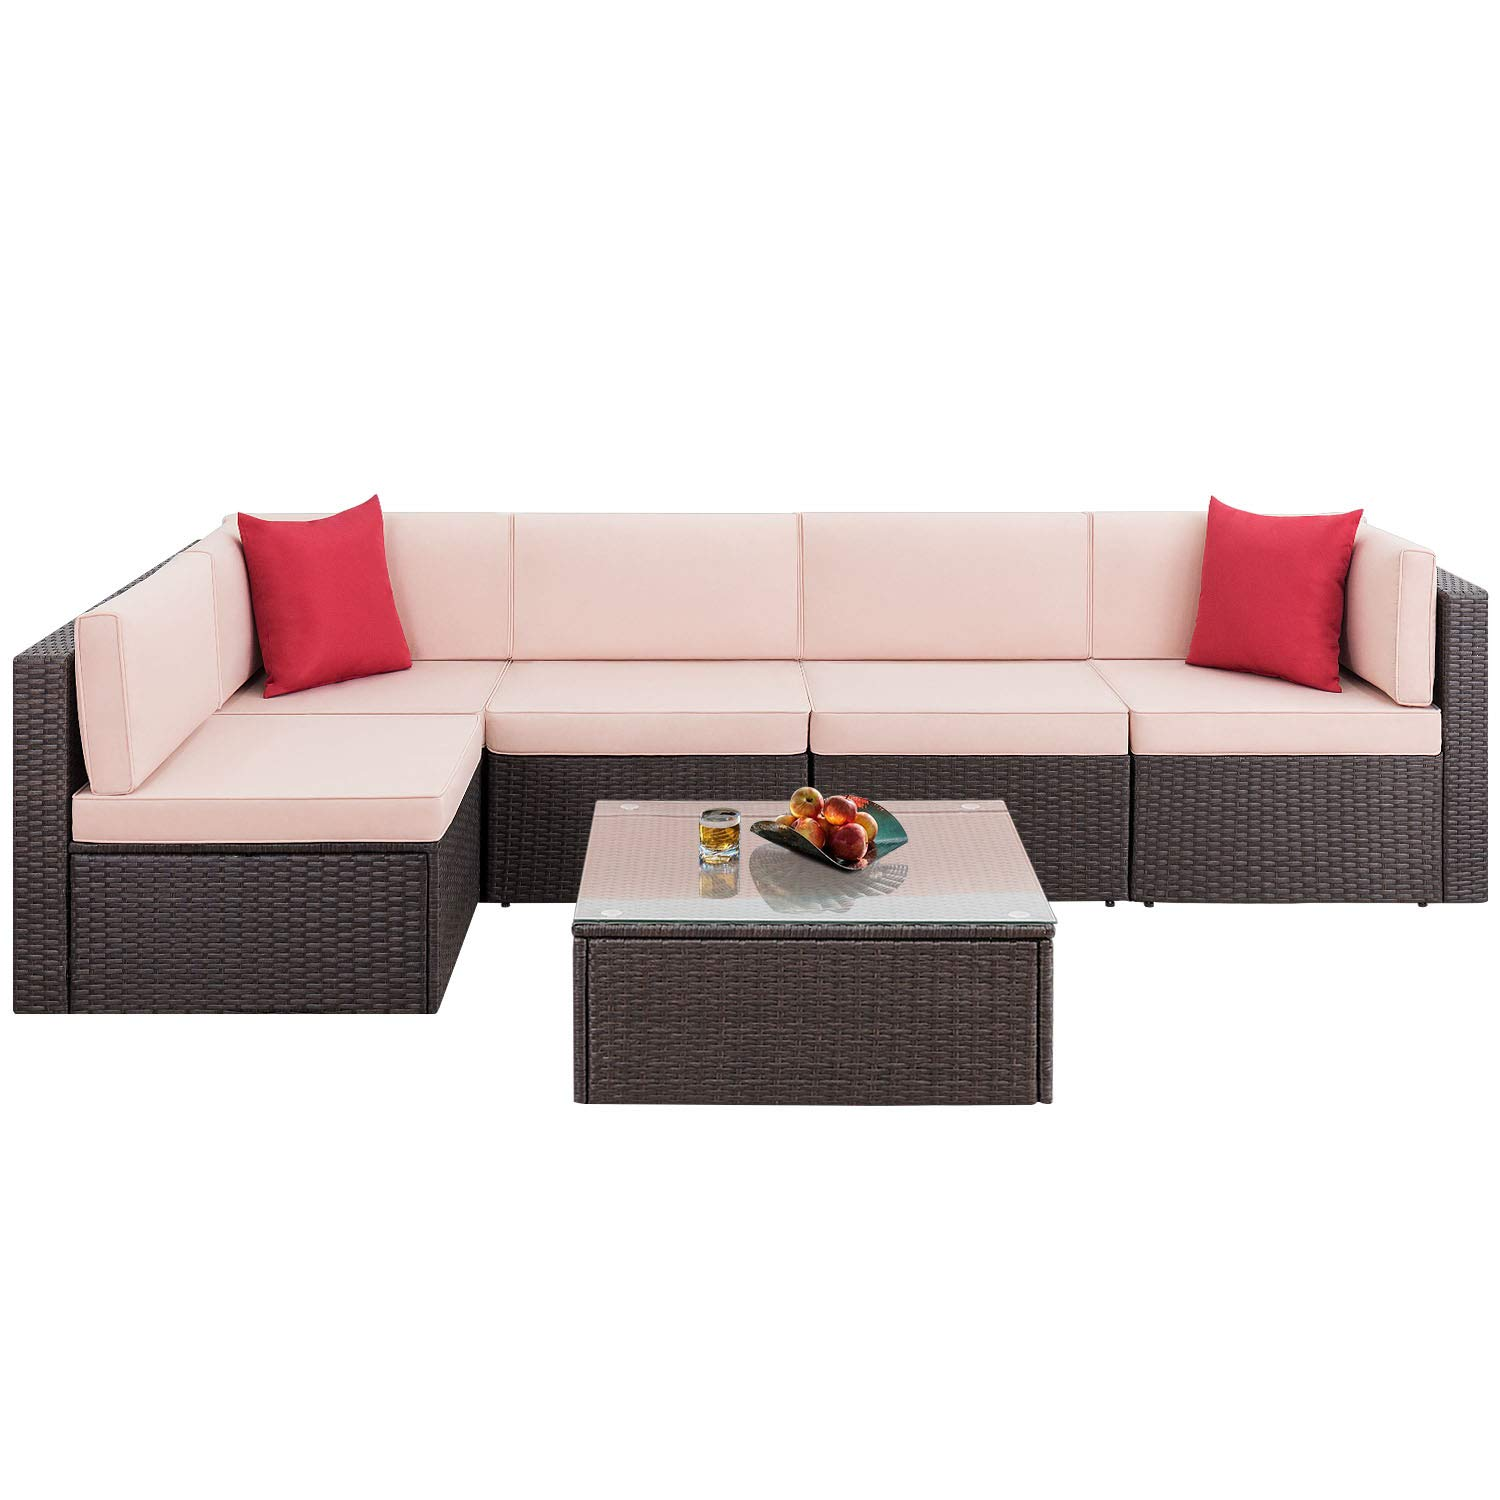 Devoko 6 Pieces Patio Furniture Sets Outdoor Sectional Sofa All-Weather Manual Weaving Wicker Rattan Patio Conversation Set with Cushion and Glass Table Brown